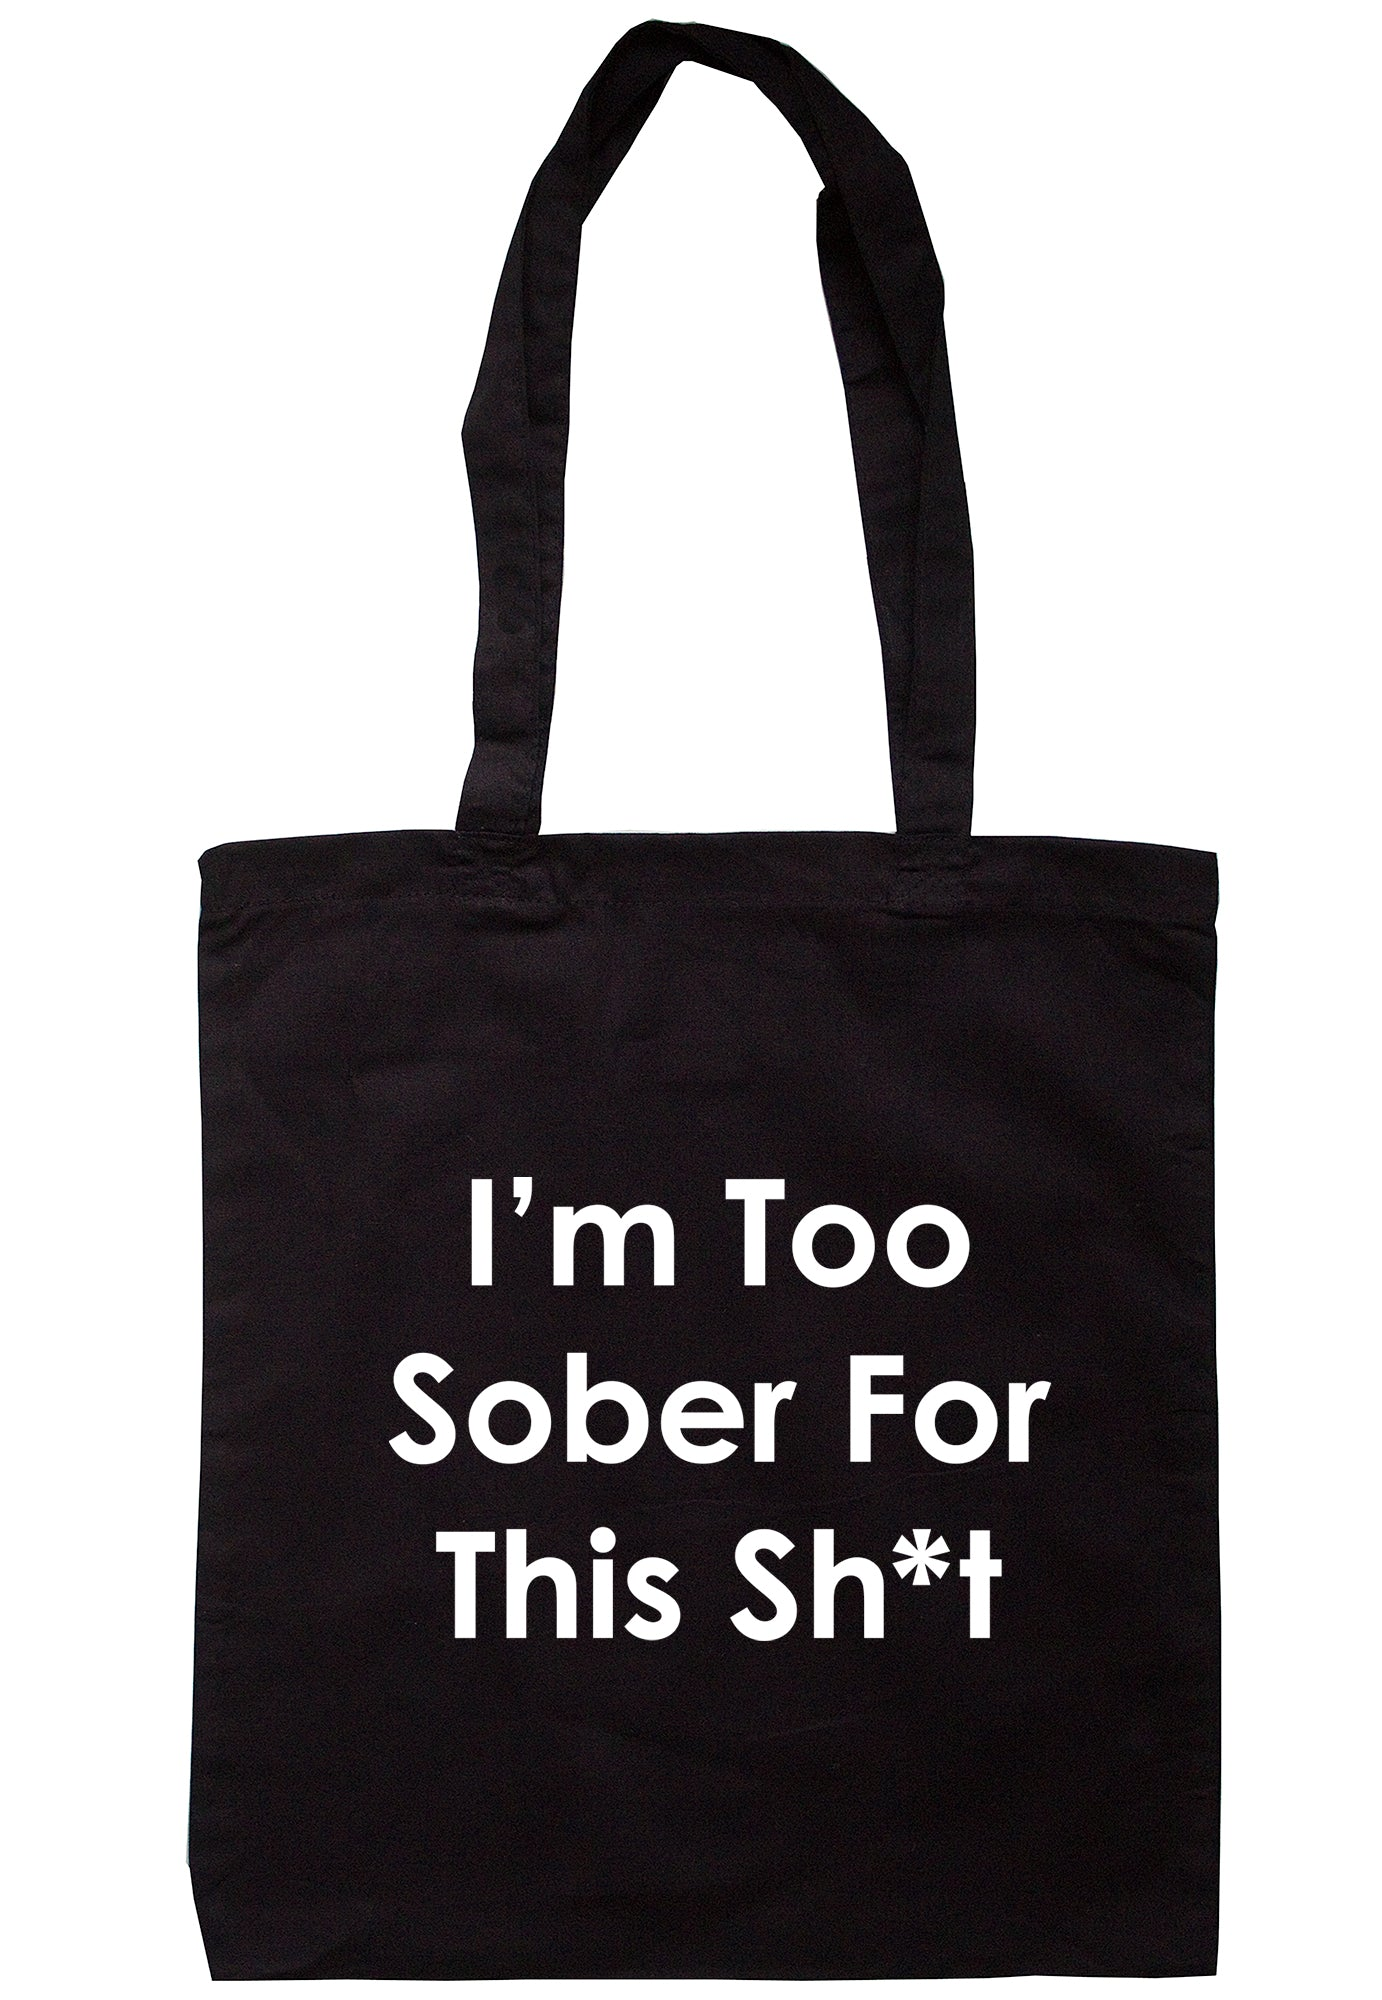 I'm Too Sober For This Sh*t Tote Bag TB1999